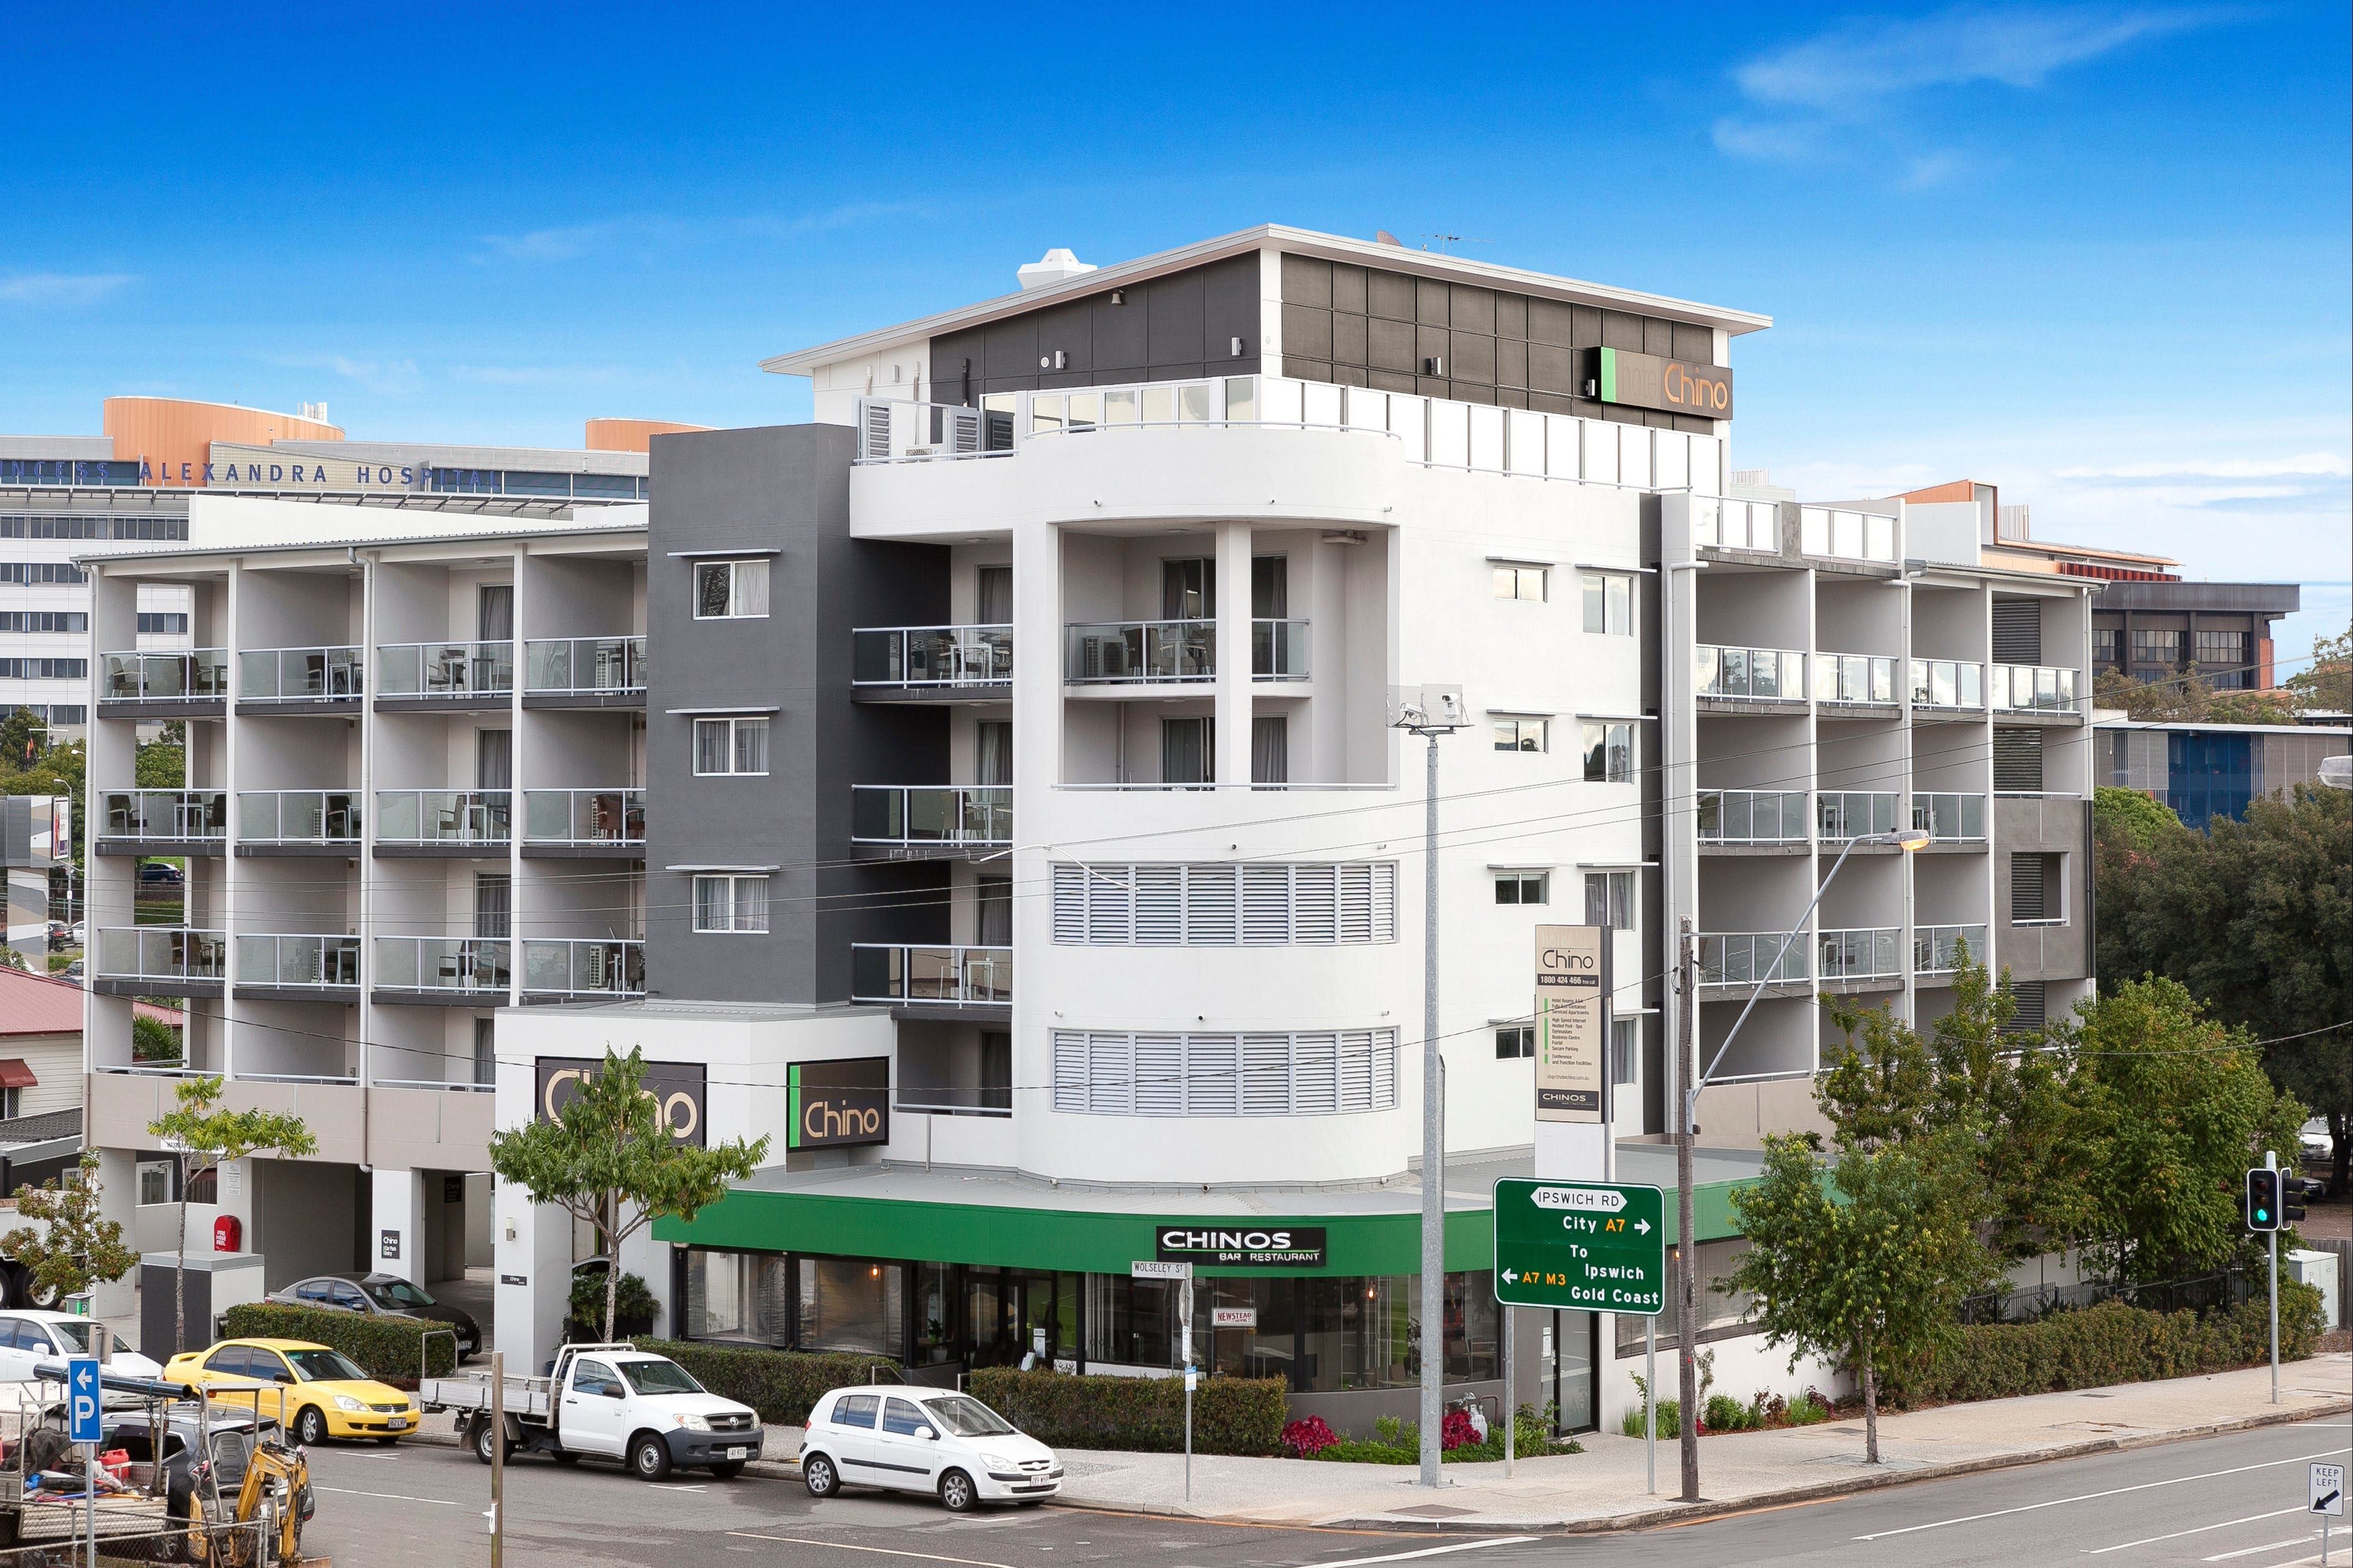 Hotel Chino - Accommodation in Brisbane